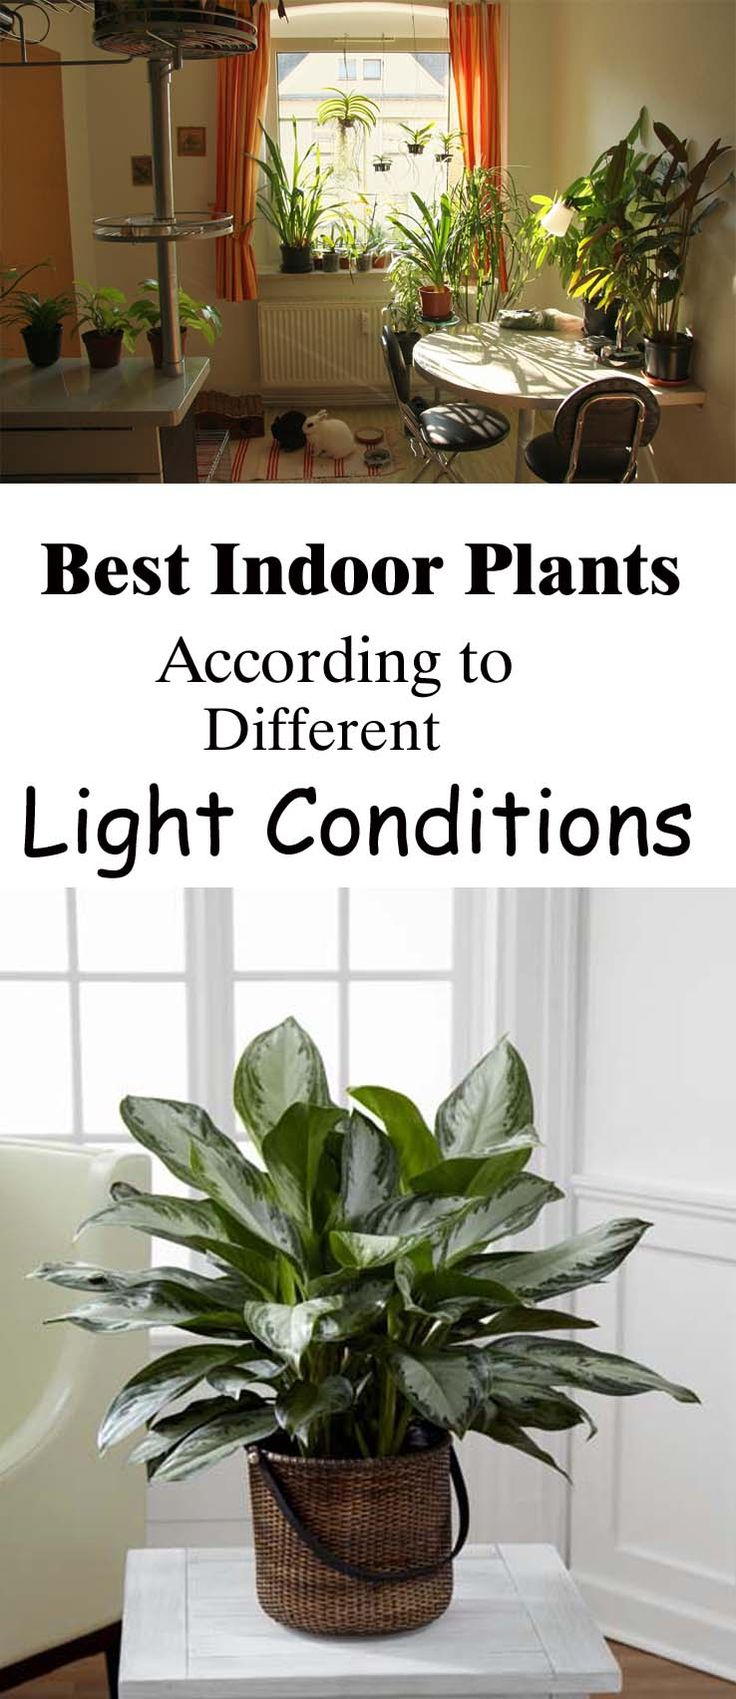 25 best ideas about plant species on pinterest weird plants blue succulents and succulents - Best indoor succulents ...